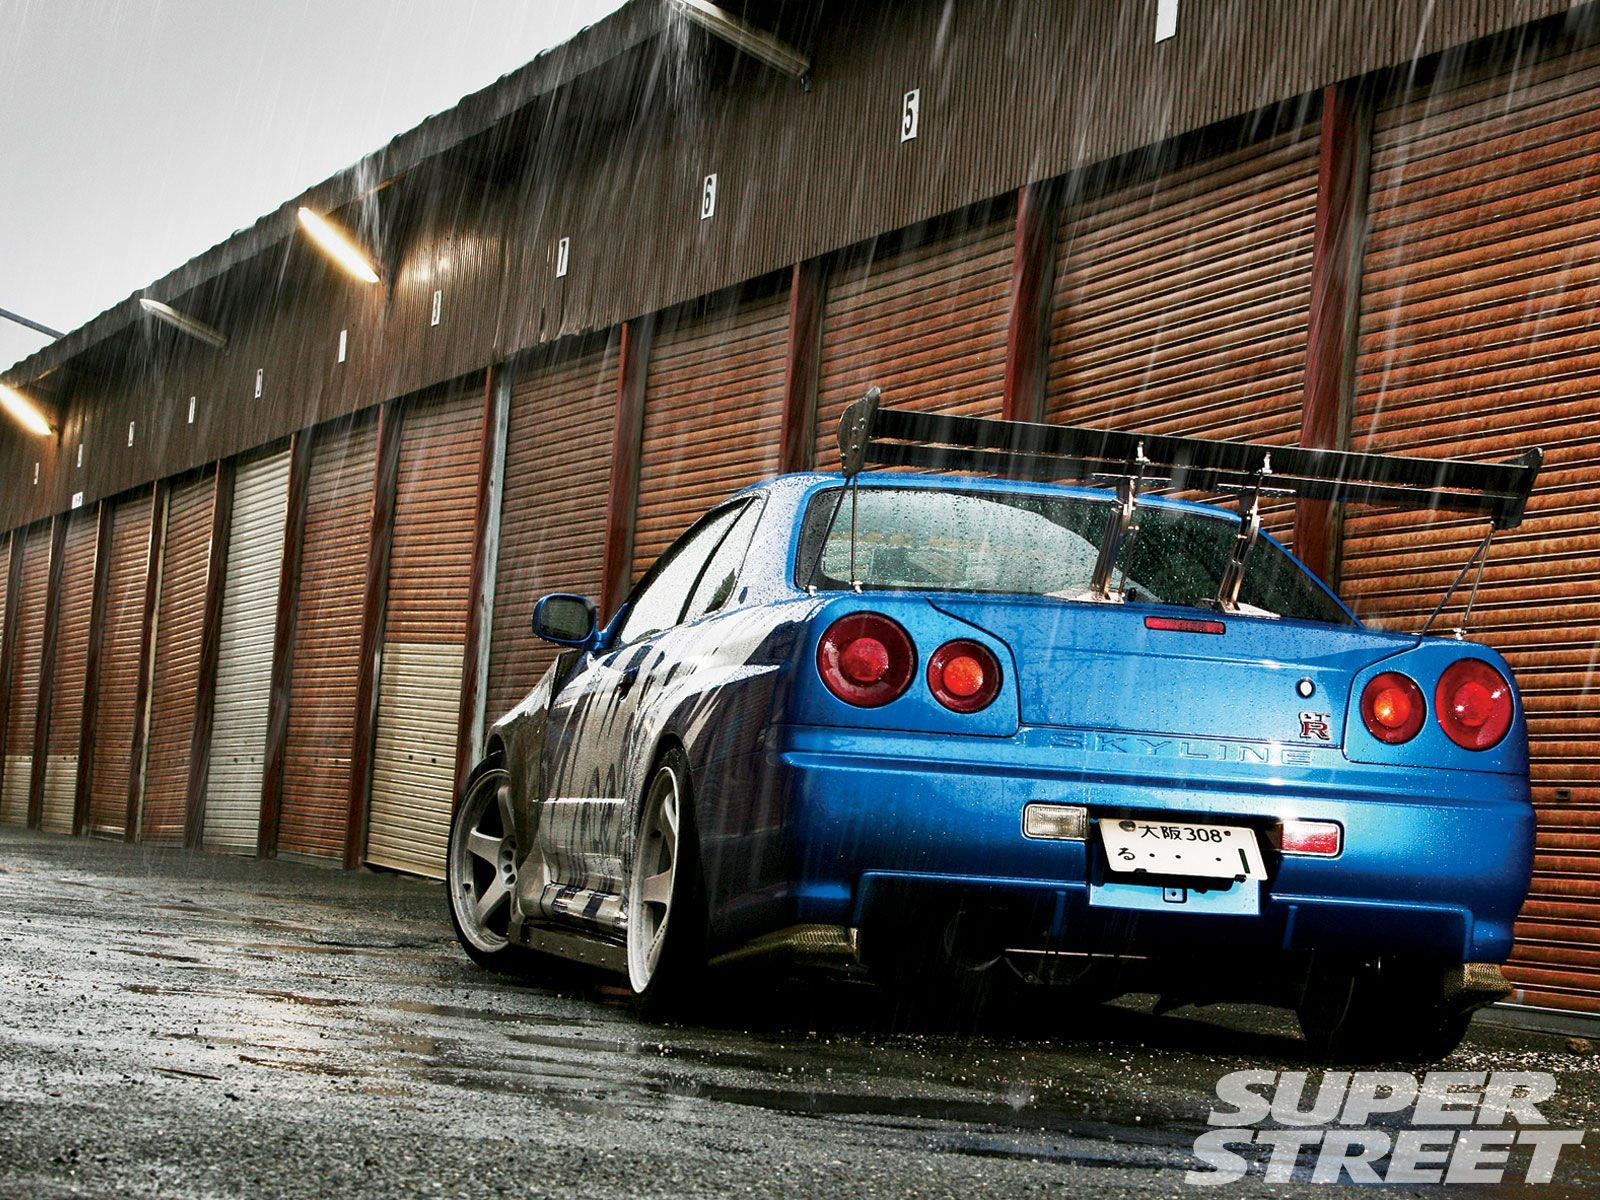 Nissan Skyline Wallpaper Group With Items | HD Wallpapers | Pinterest | Nissan  Skyline And Wallpaper